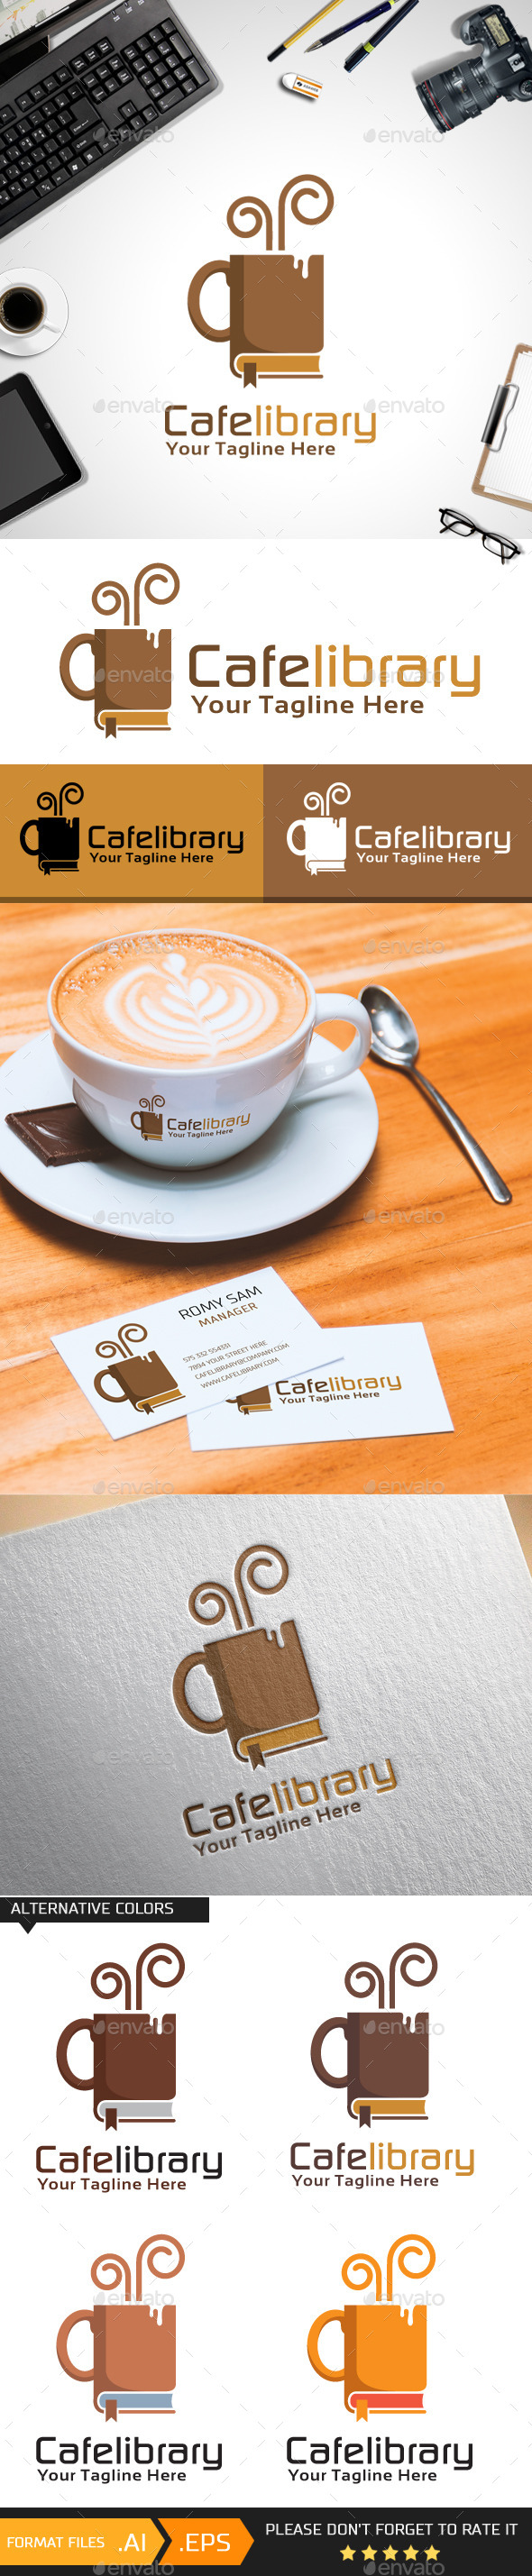 GraphicRiver Cafelibrary Logo Template 10412384